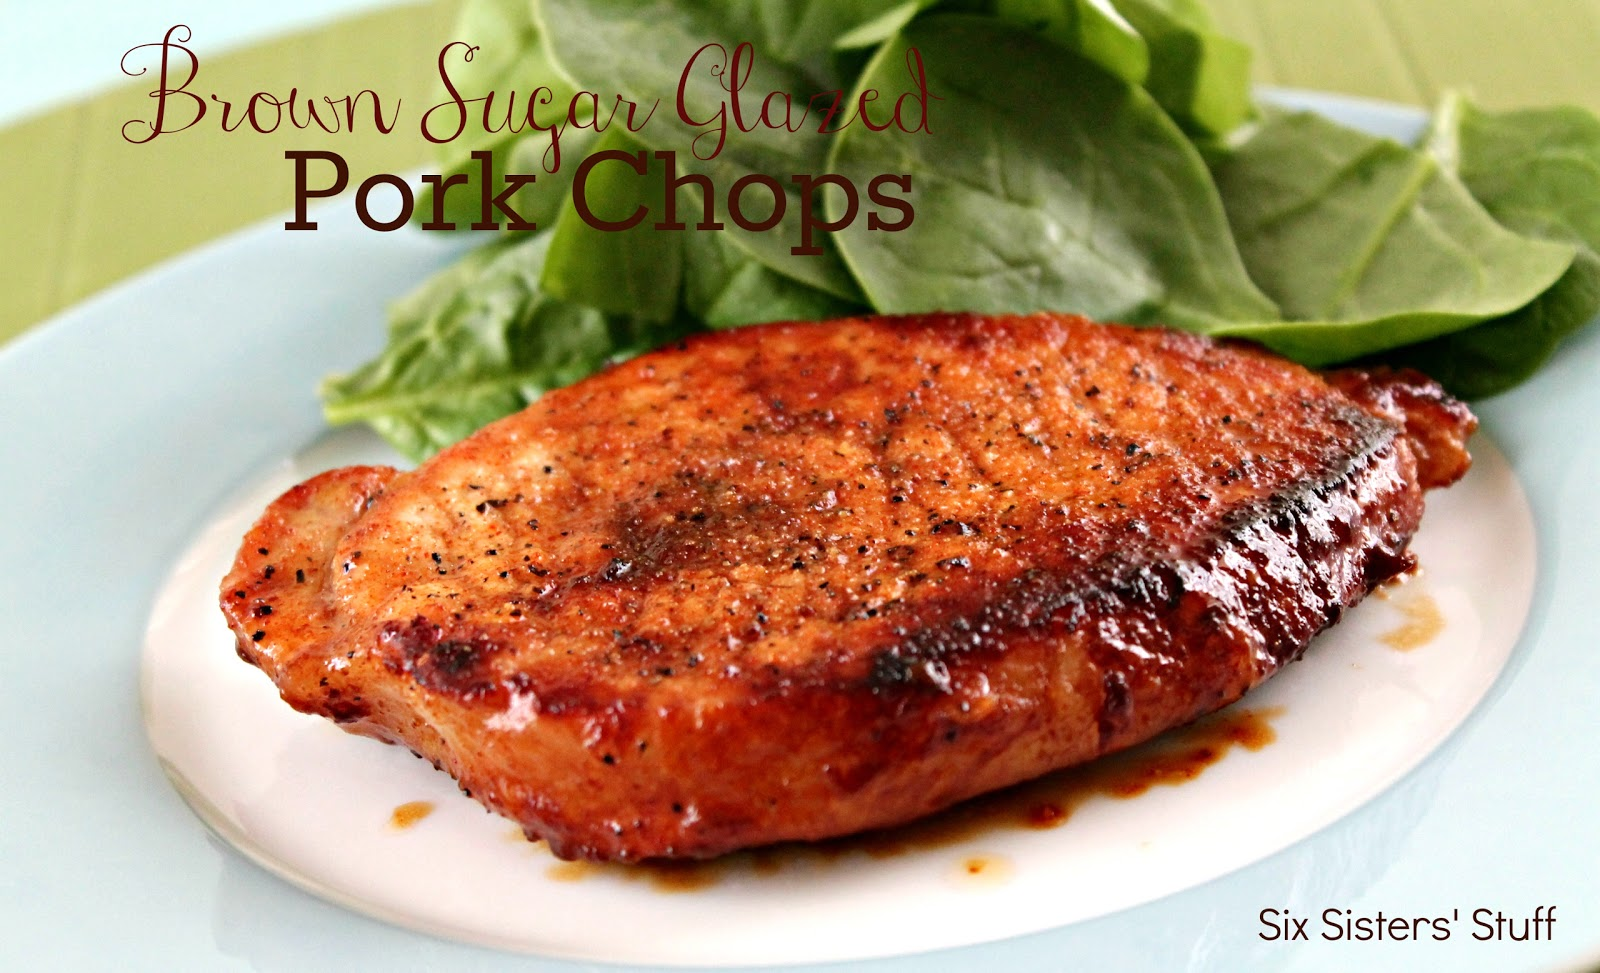 Brown Sugar Glazed Pork Chops Recipe